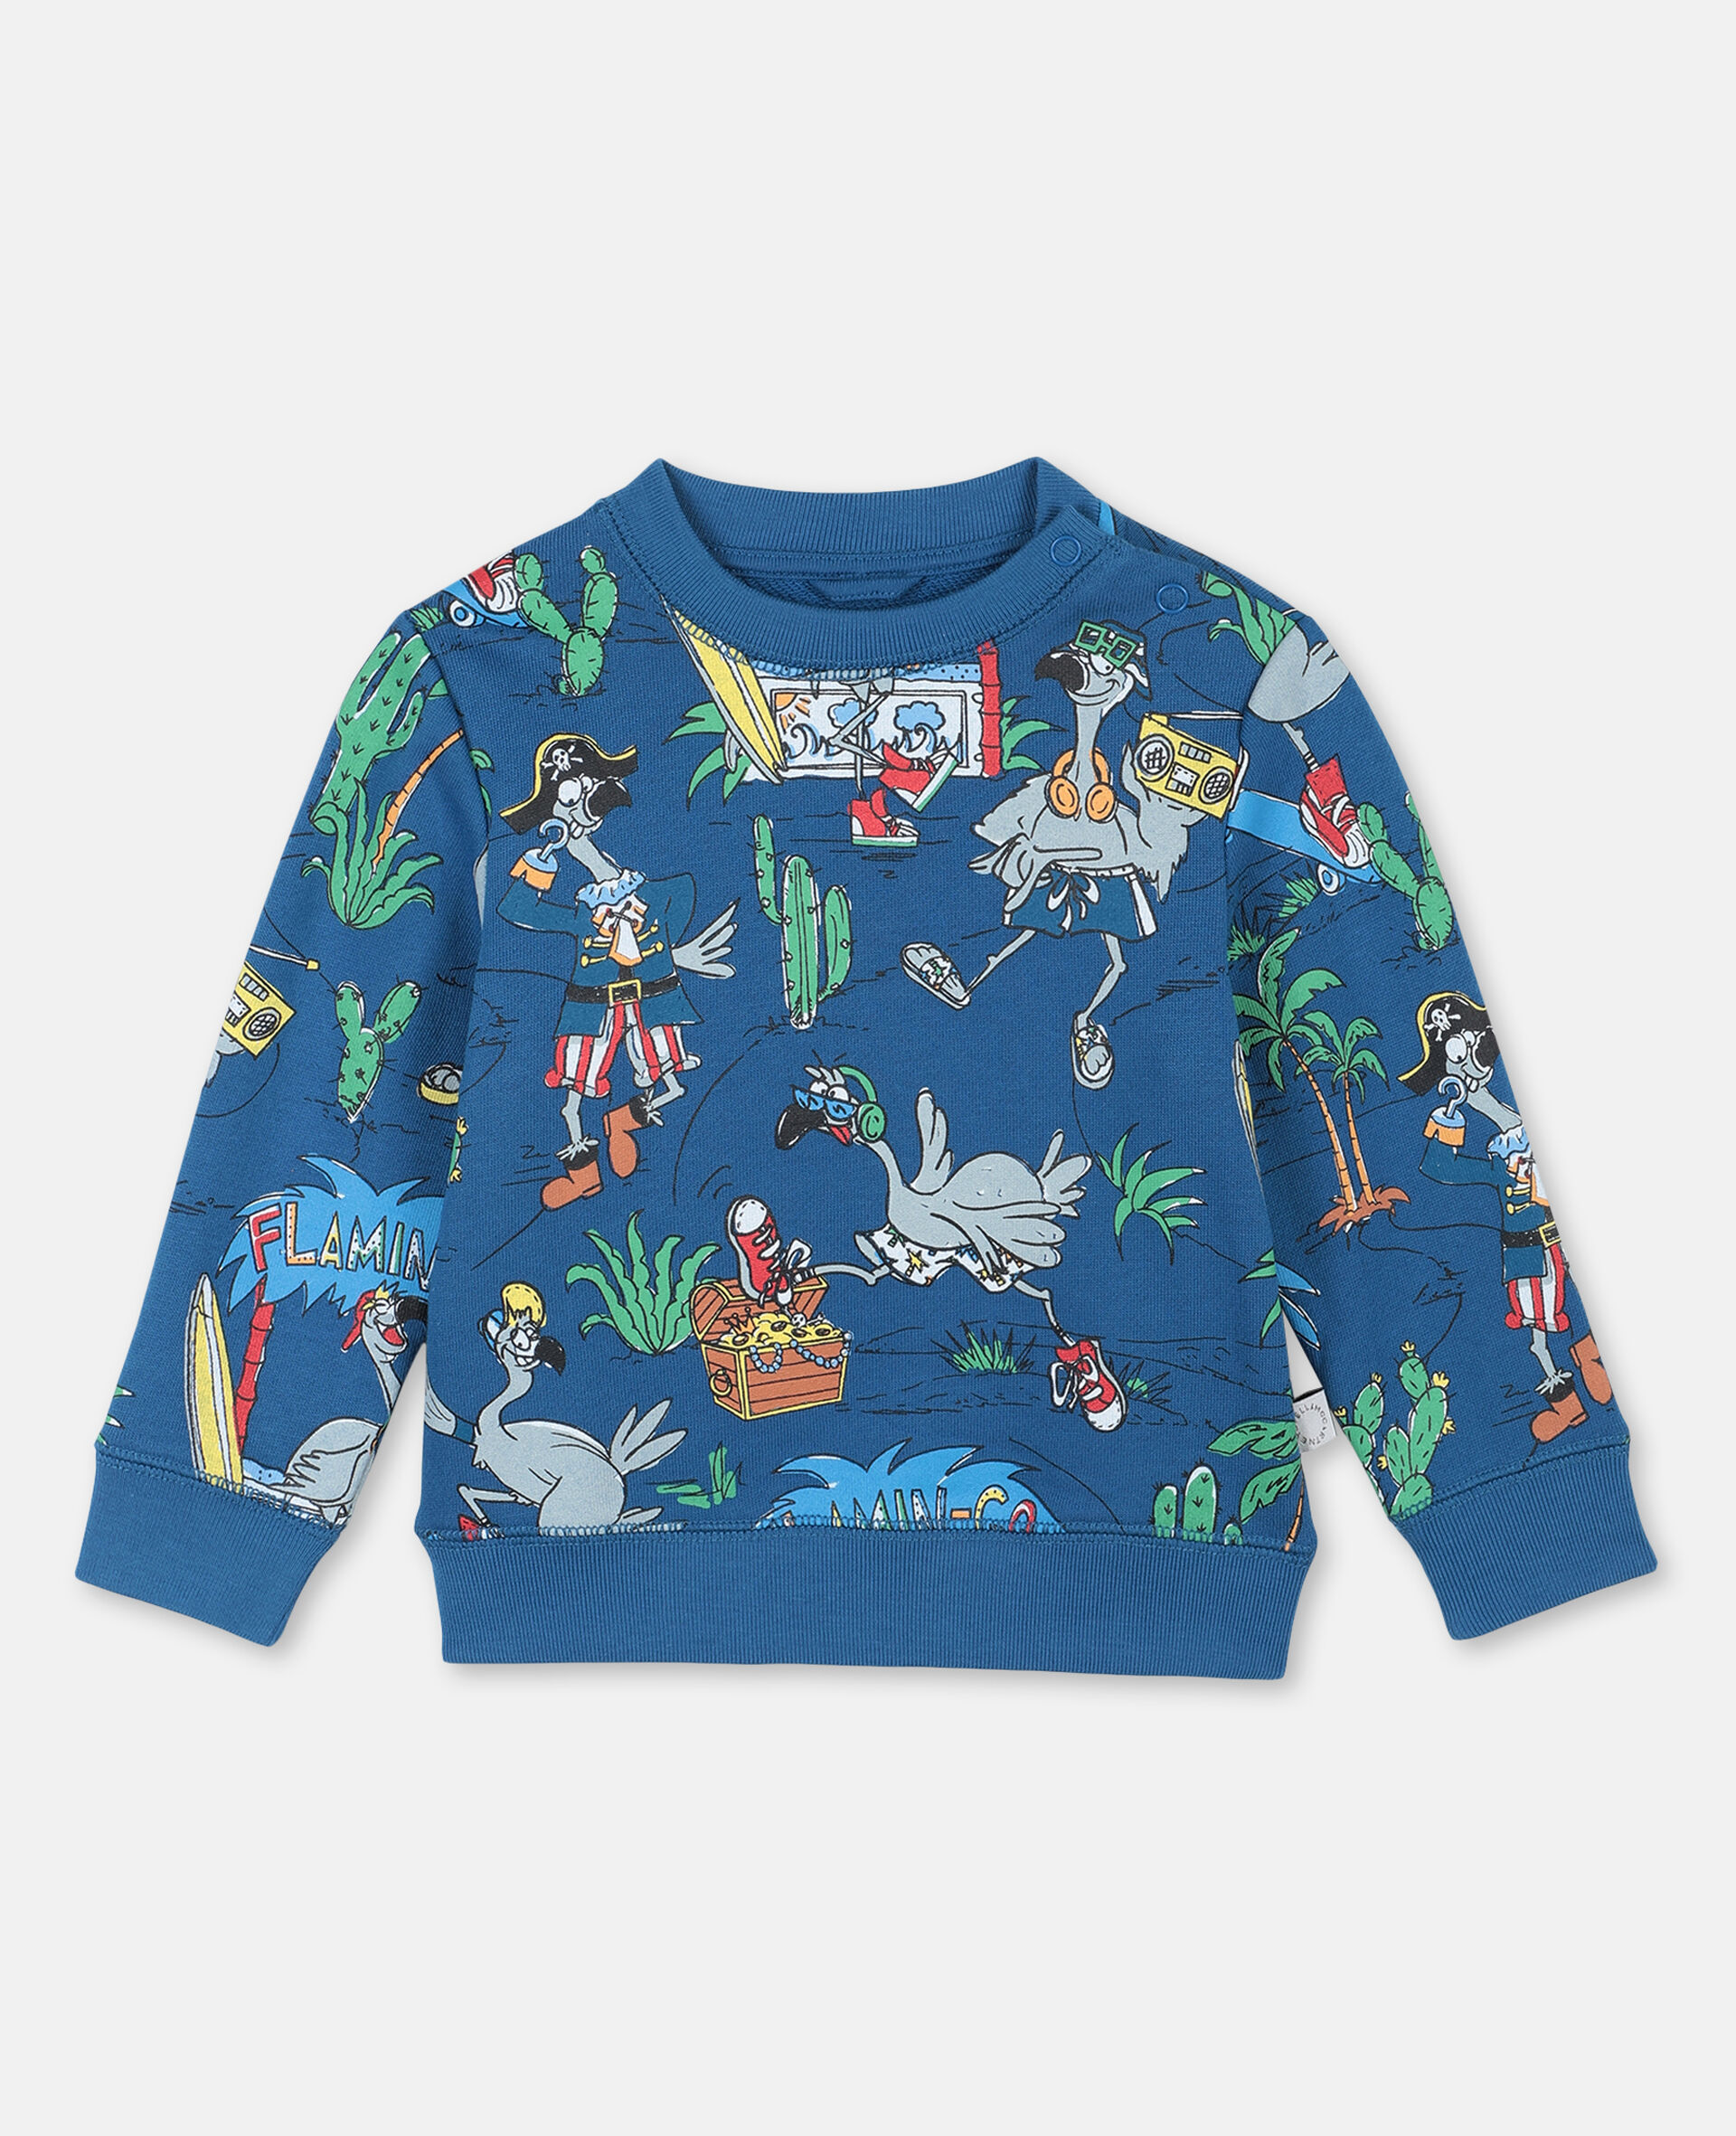 Flamingo Land Cotton Sweatshirt -Blue-large